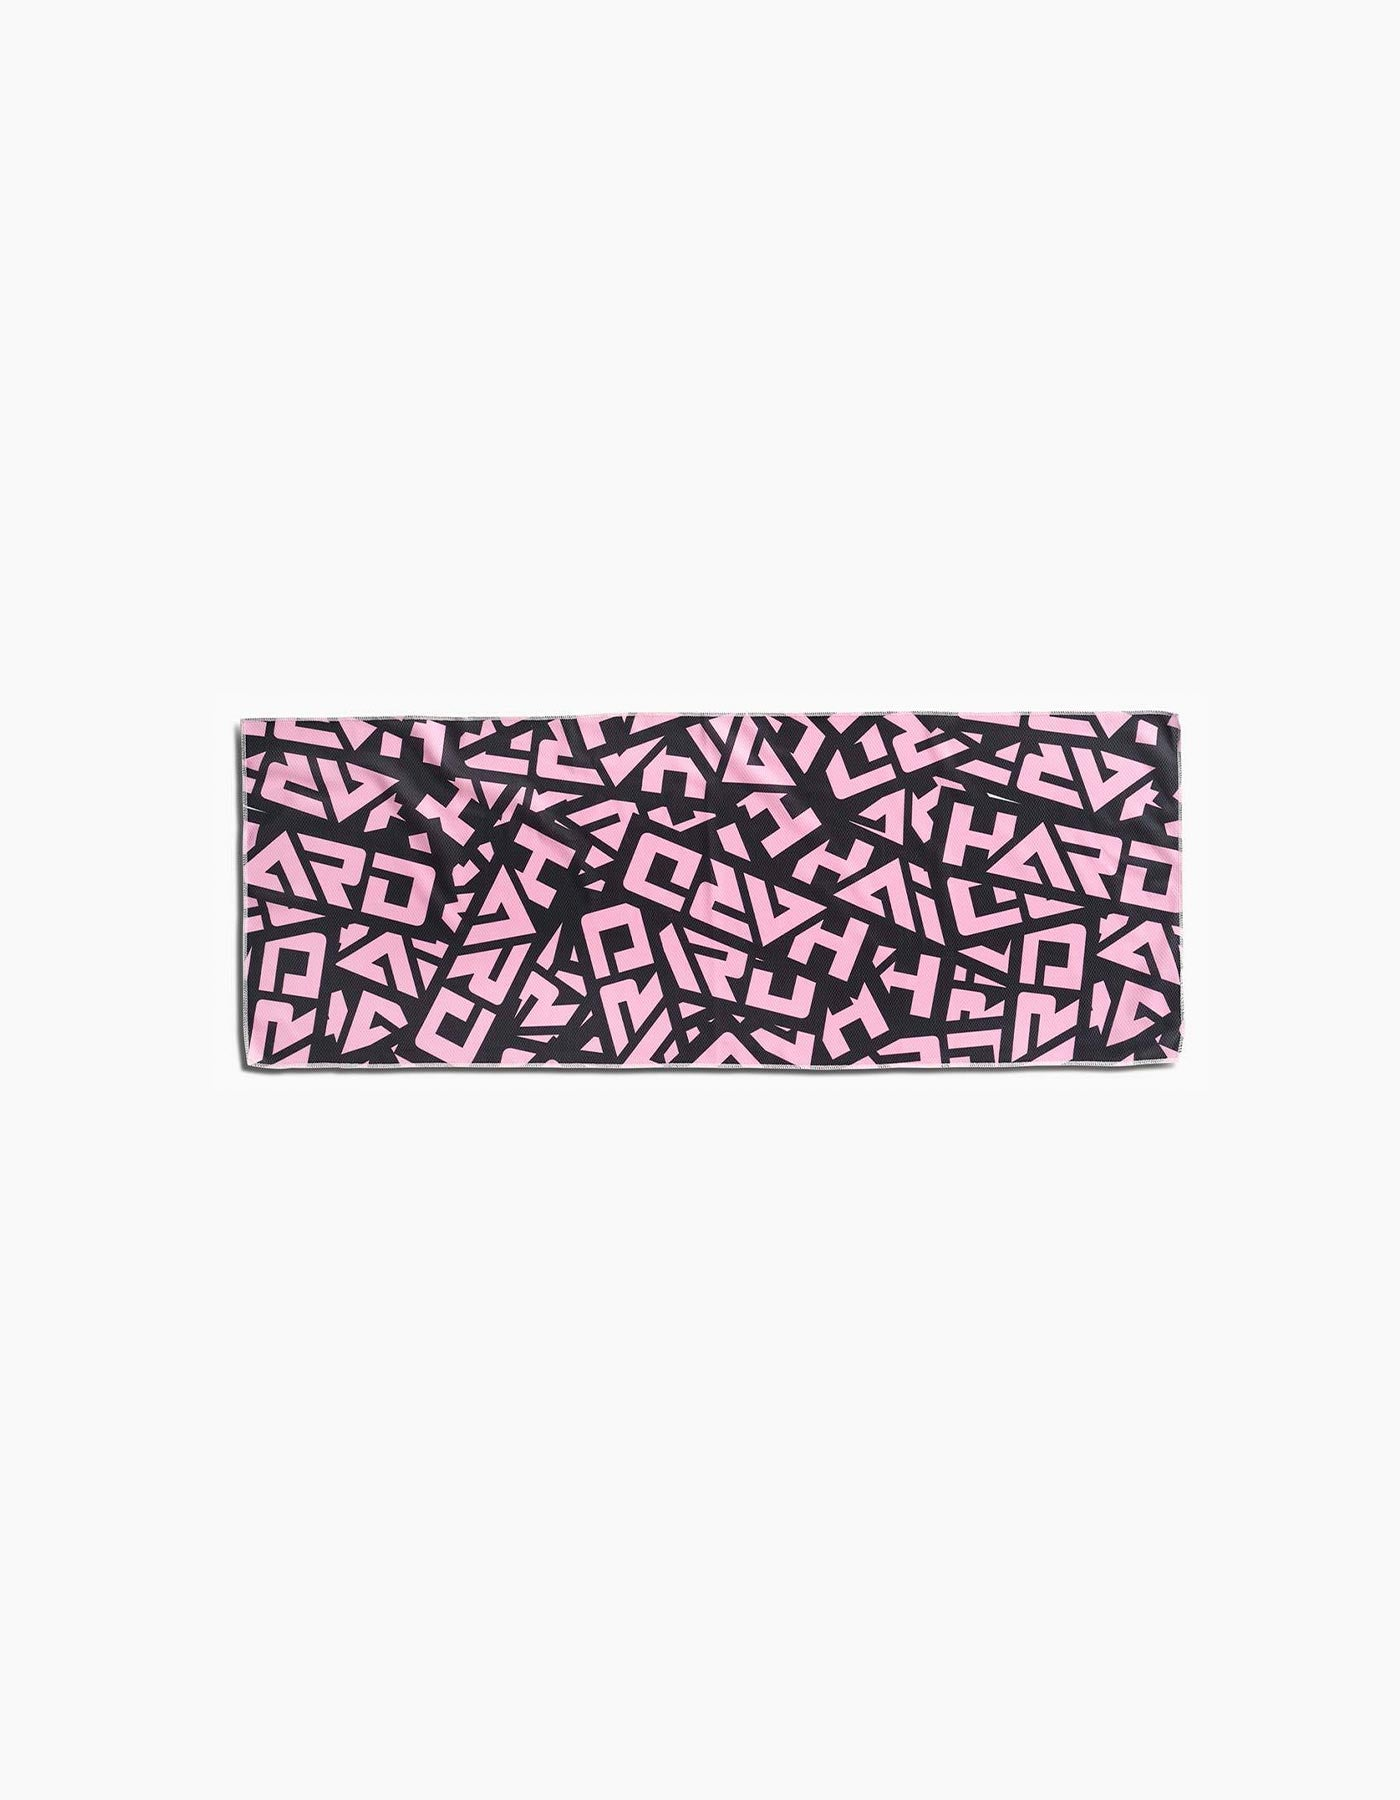 HARD Summer Heatwave Cooling Towel